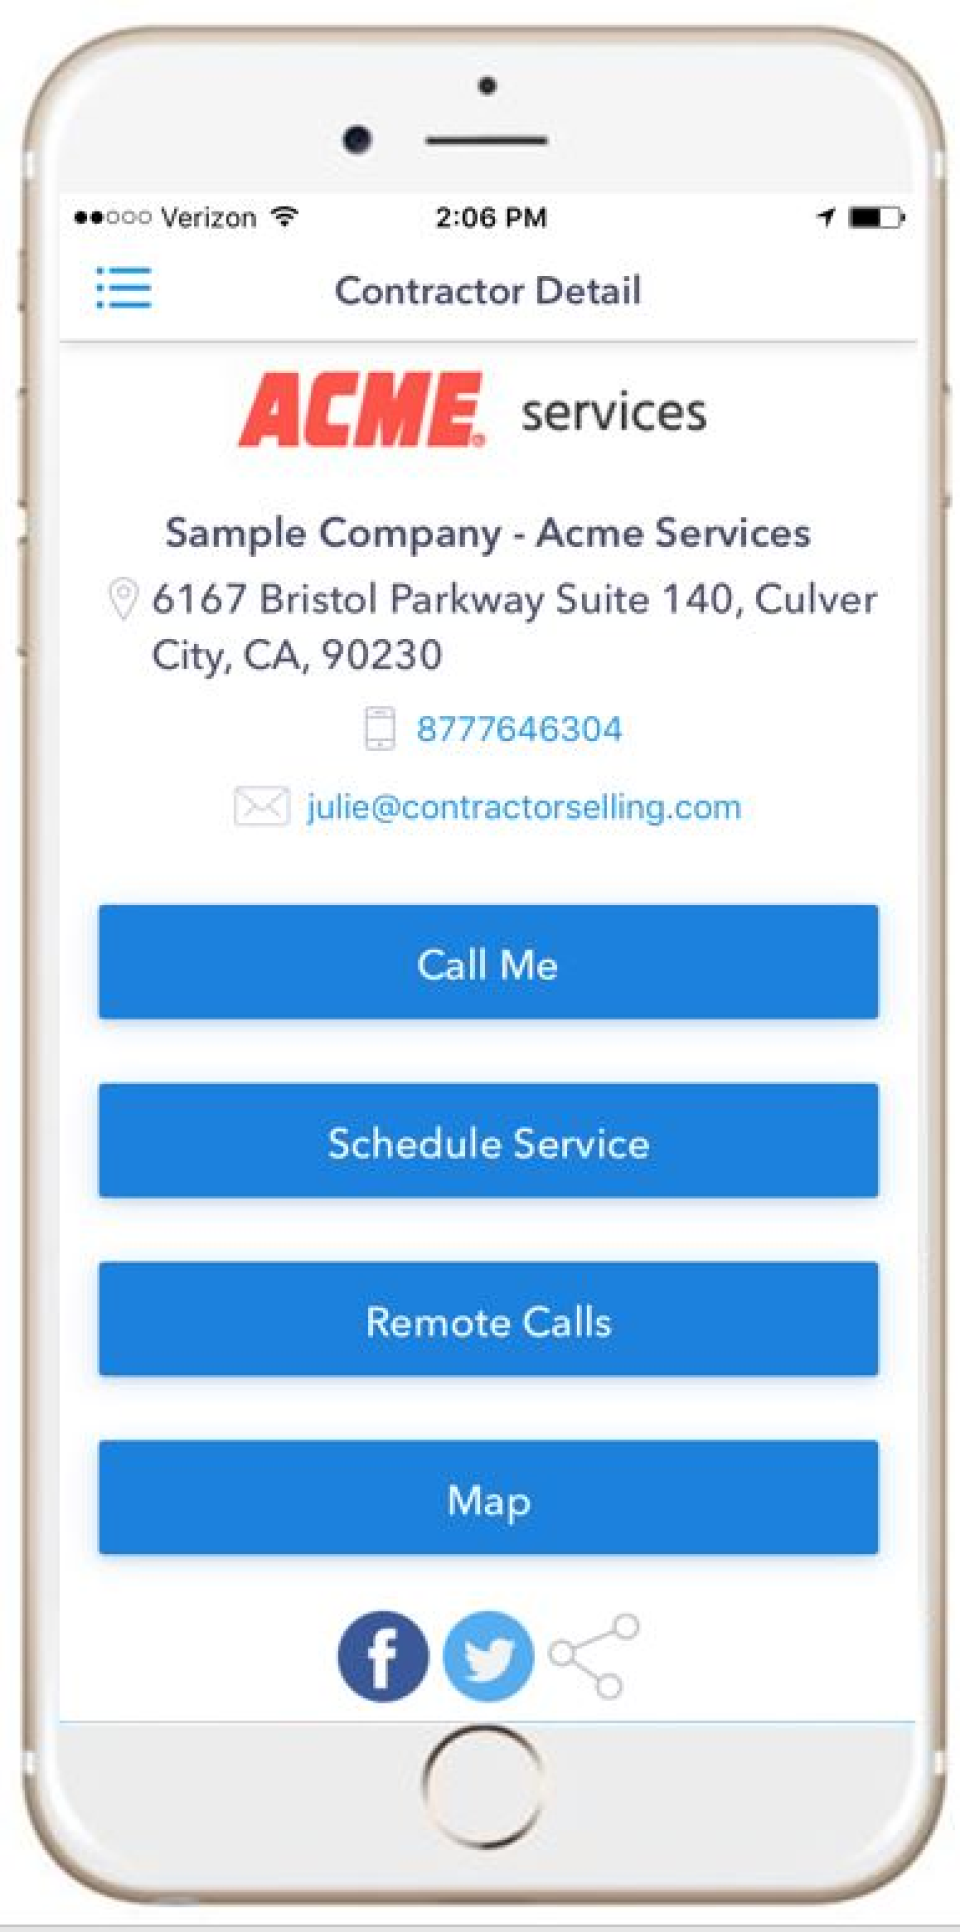 Schedule services from mobile app